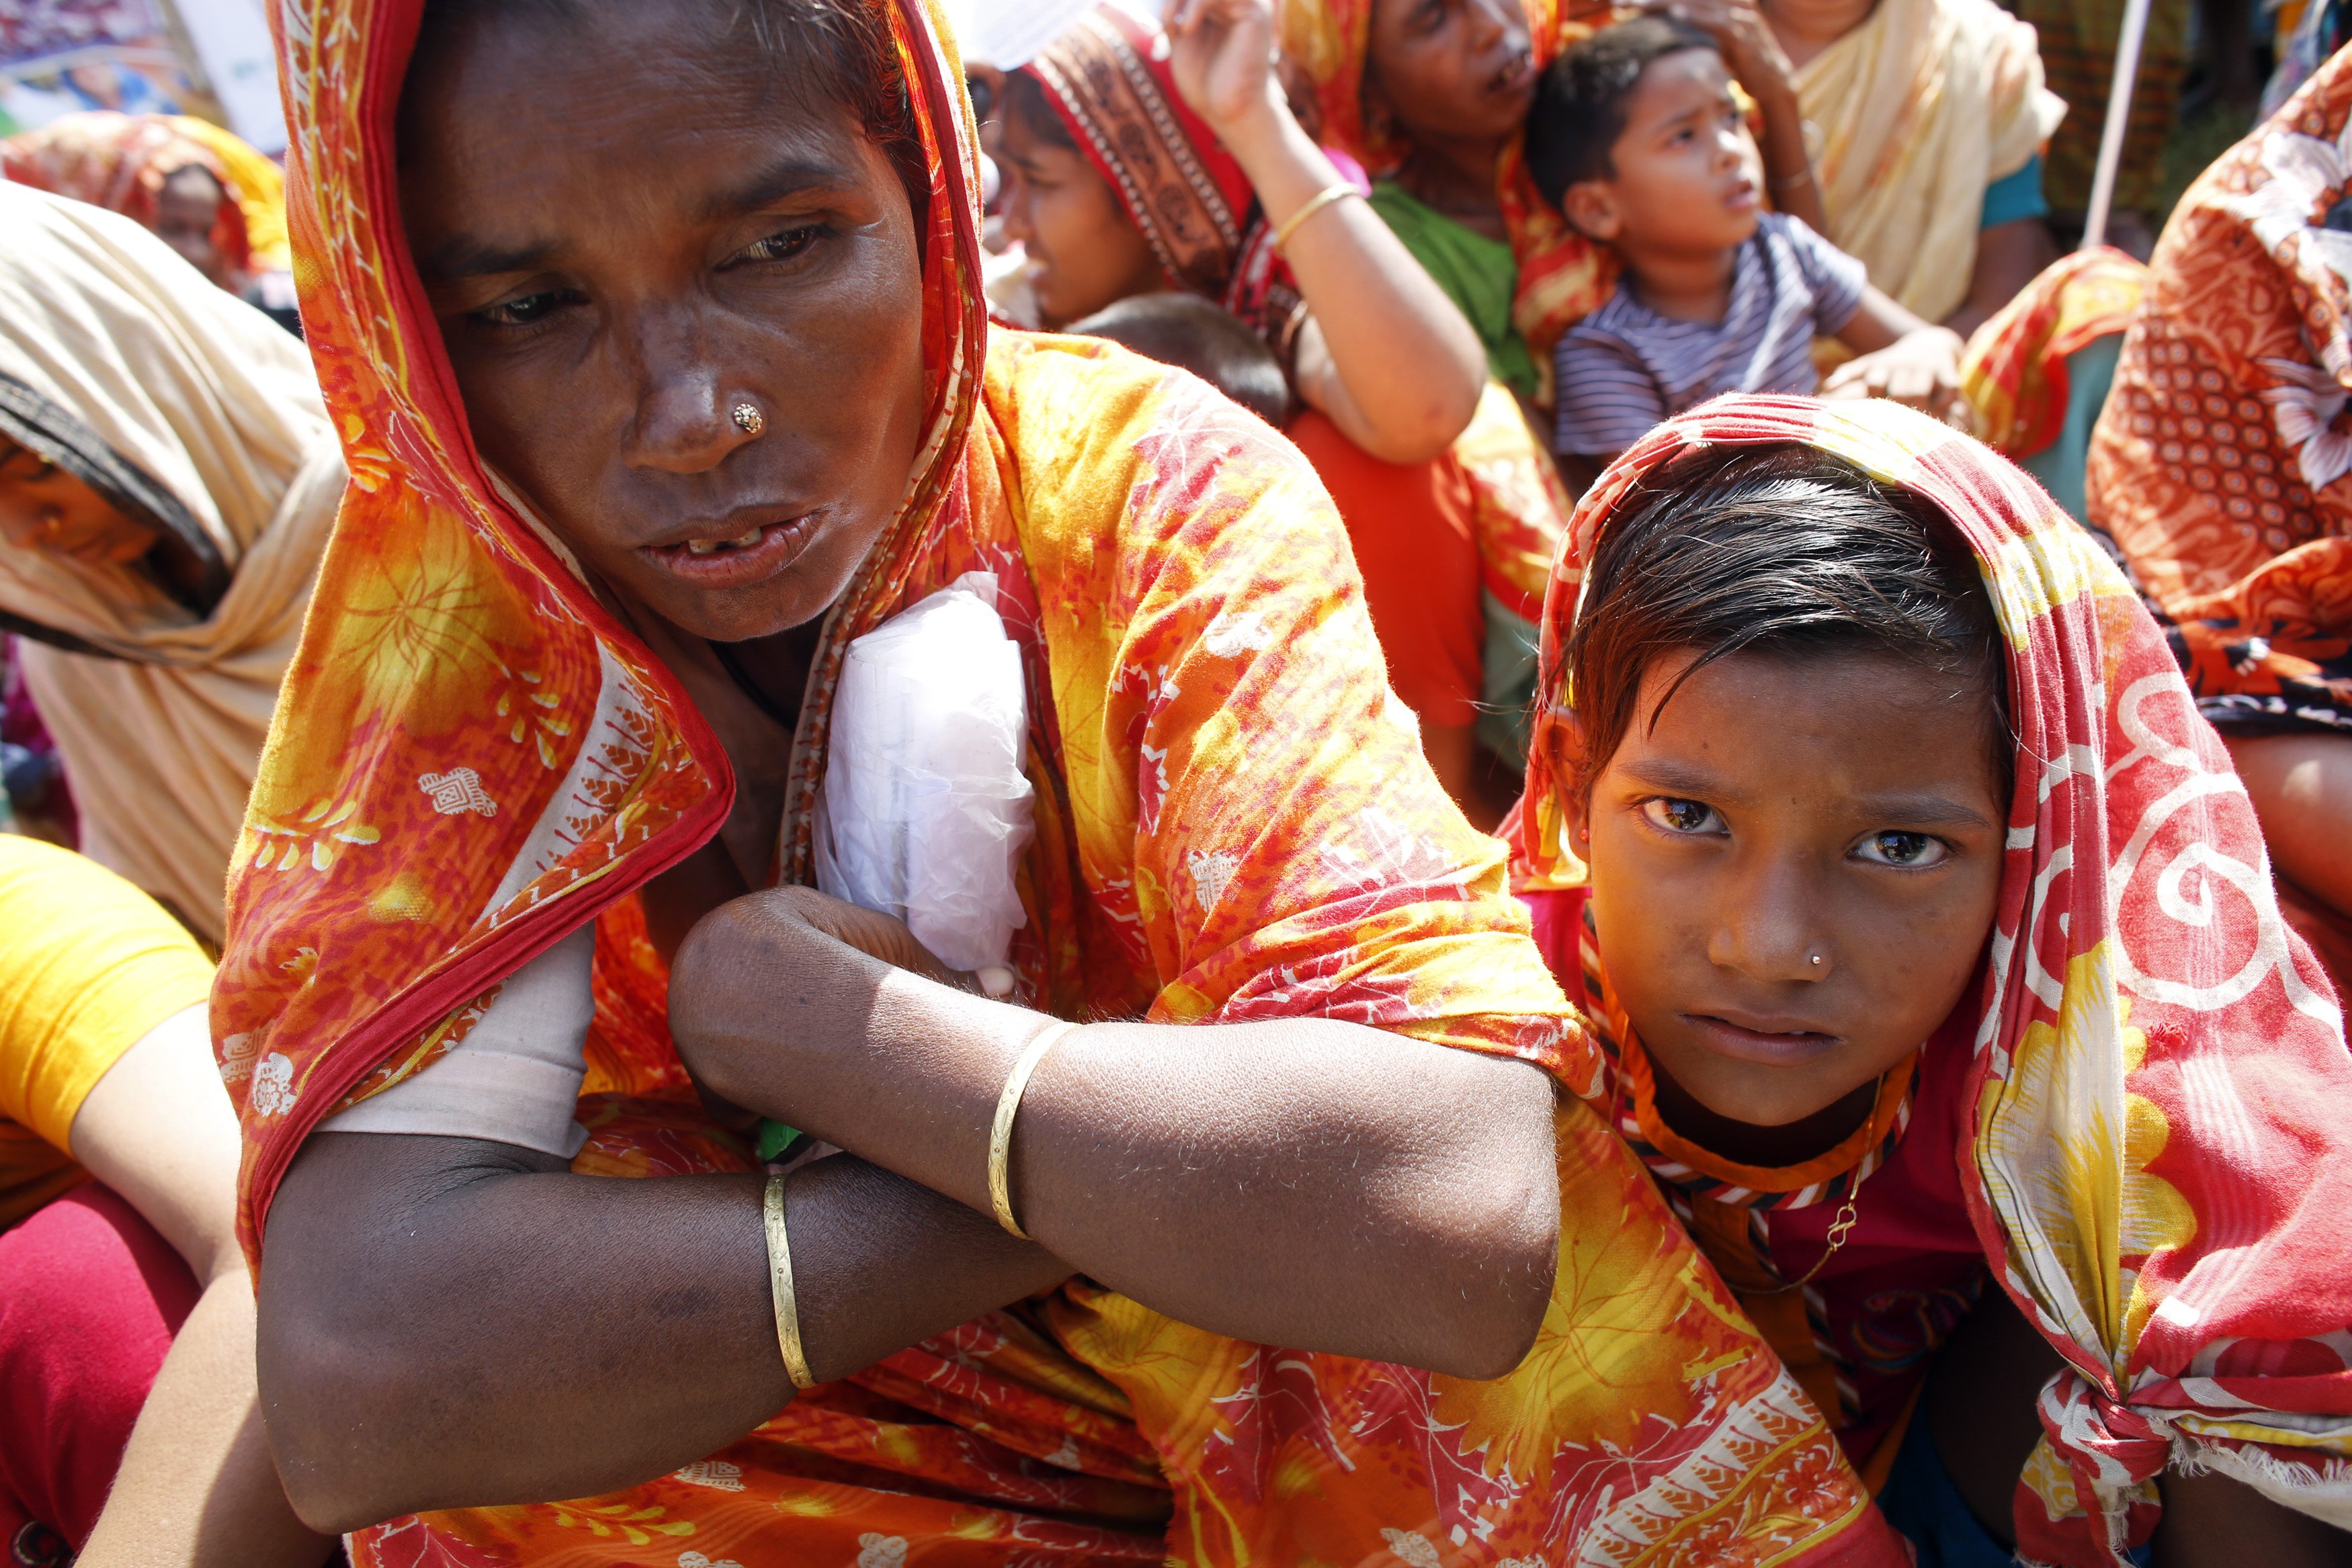 A garment worker who survived the Rana Plaza building collapse takes part in a protest with her child to demand compensation, at the factory site in Savar, Bangladesh, October 24, 2013.